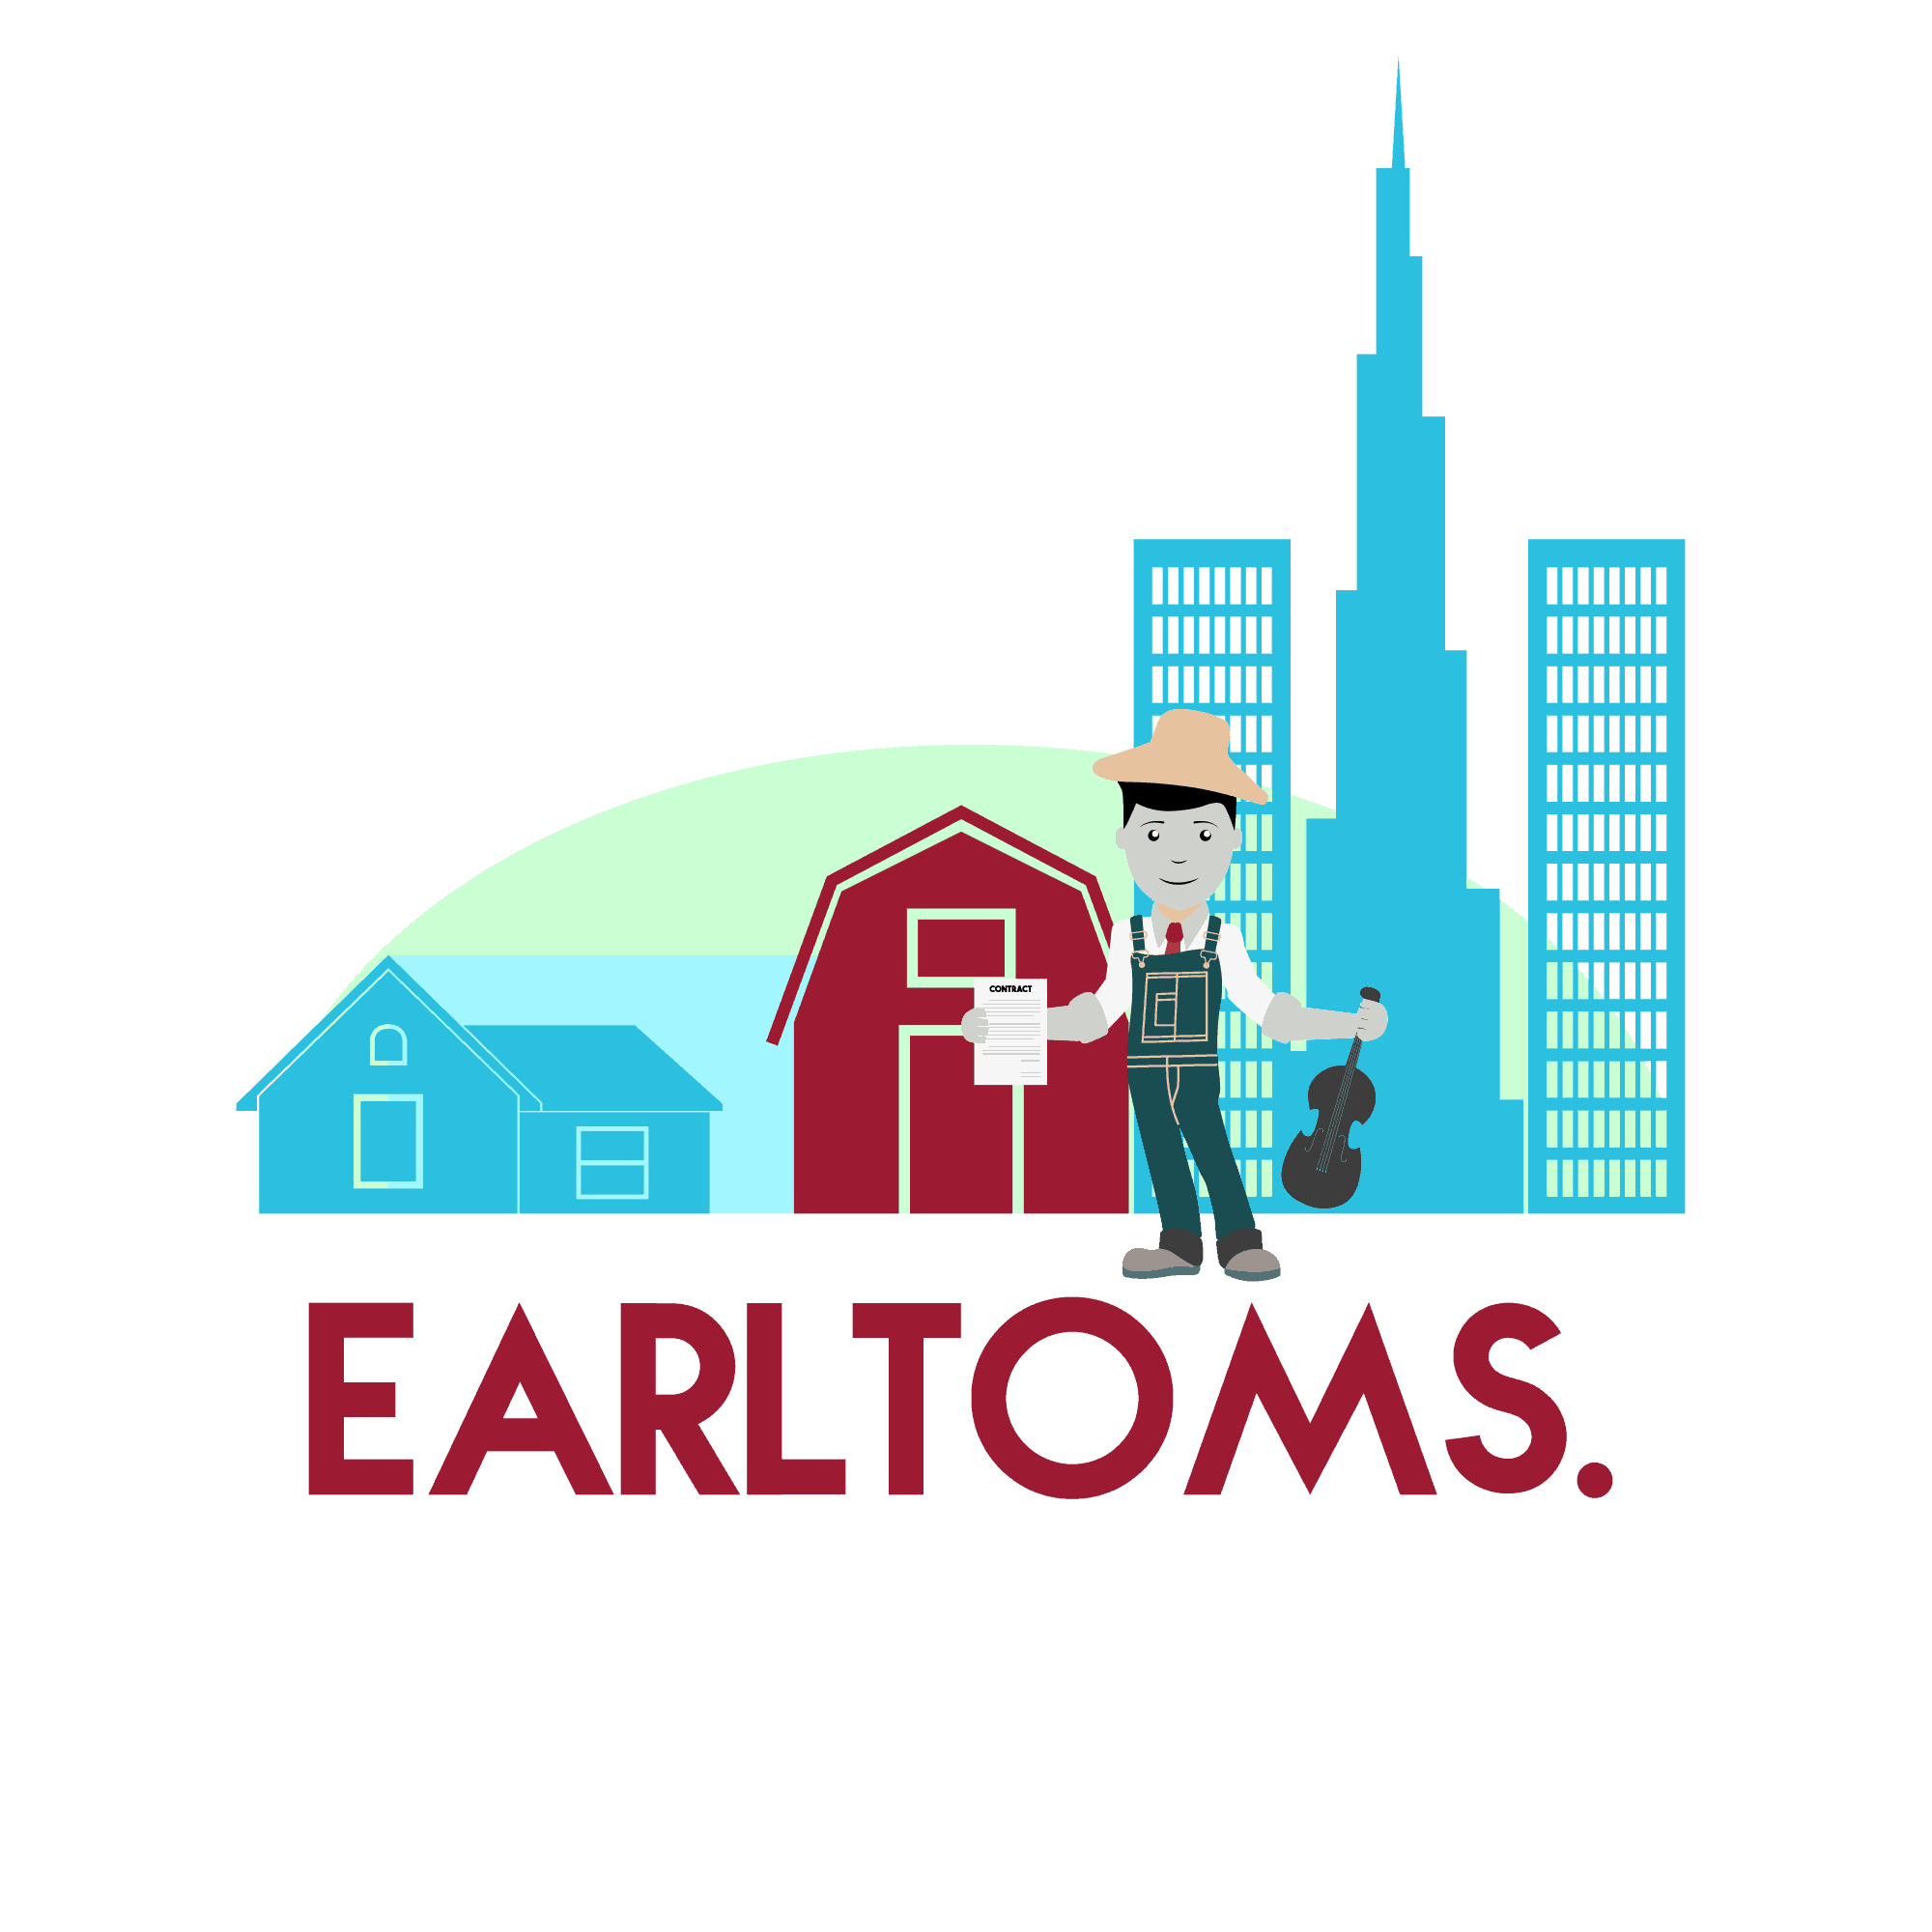 EarlToms Podcast - Episode #1 - Hello